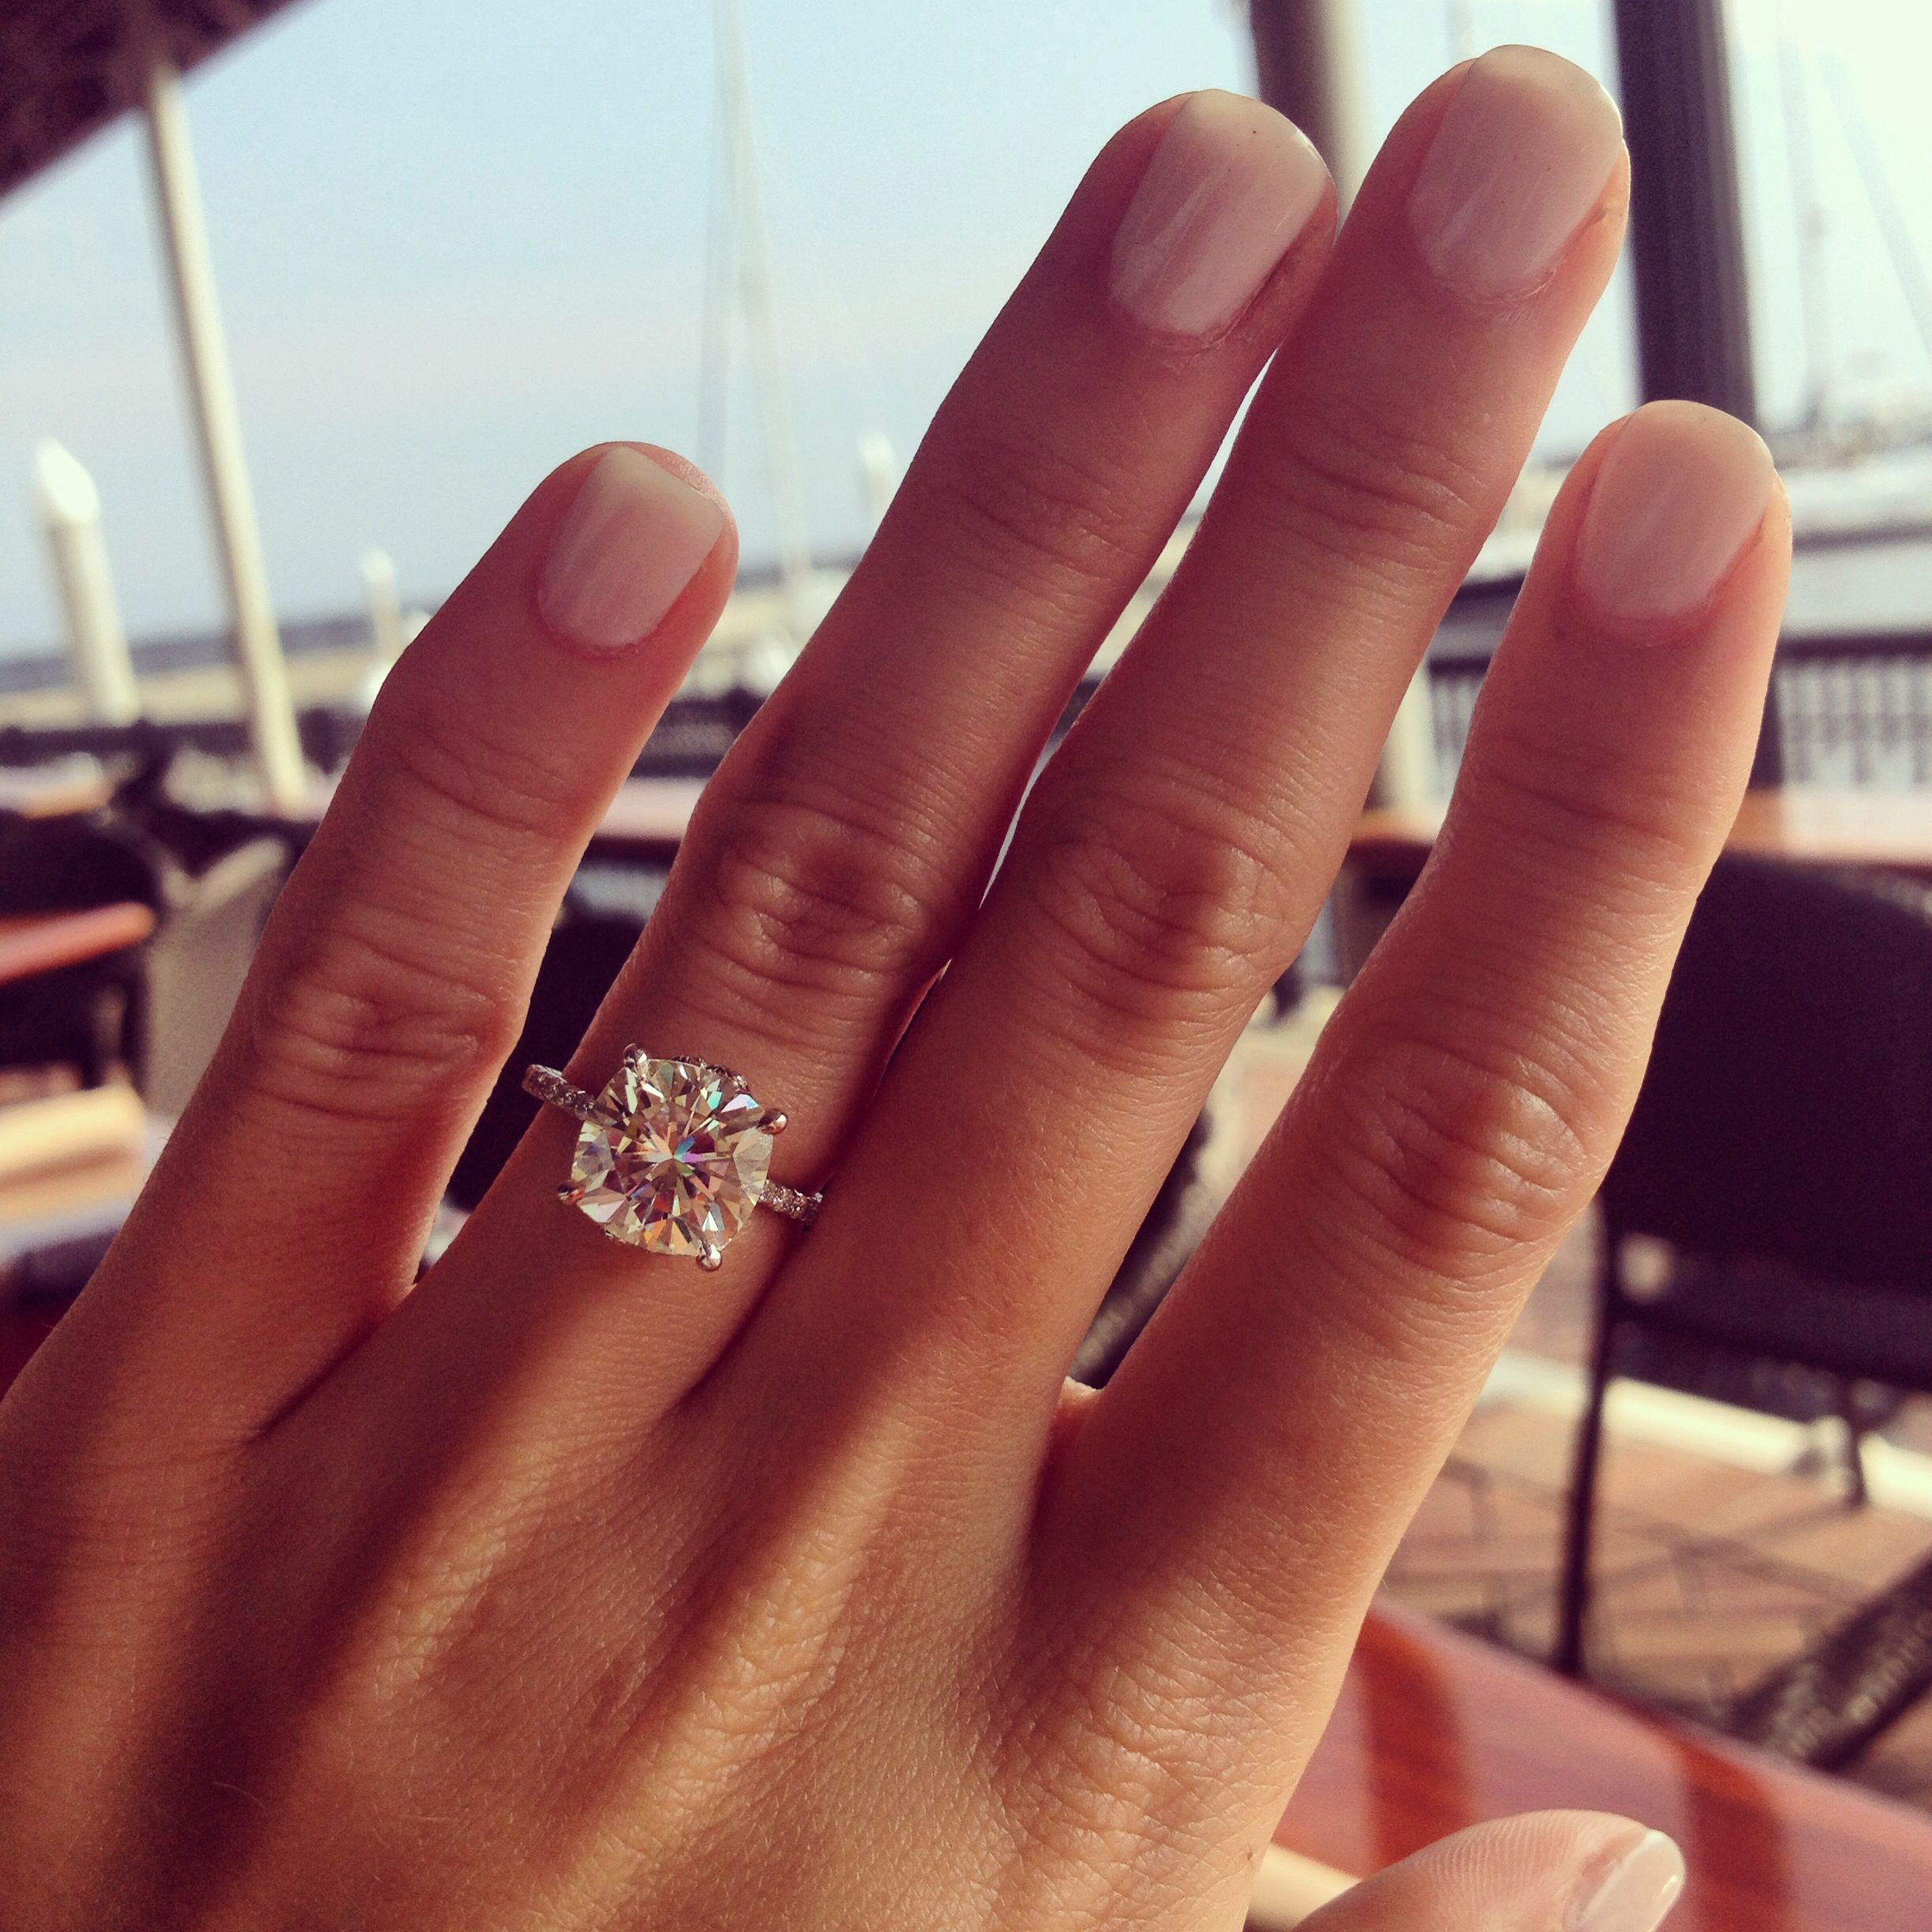 Find This Pin And More On Engagement Rings Love The Cushion Cut And Baby  Diamonds